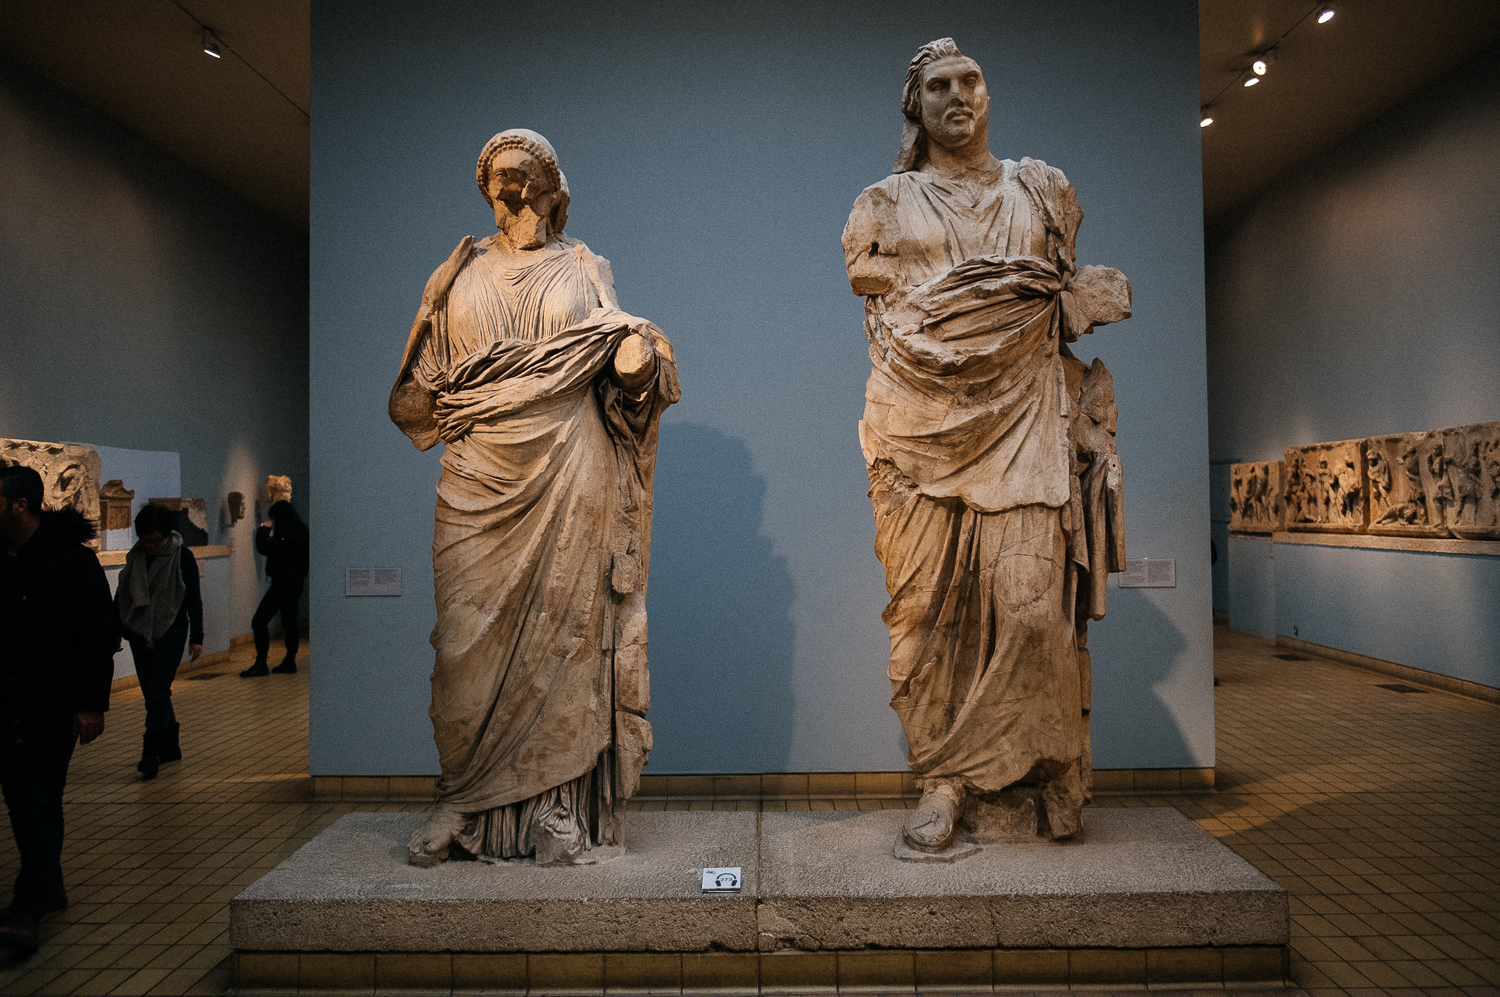 Here are the statues of Artemisia and Maussollos himself, which were at the very top, inside a chariot pulled by four horses. The plaques at the British Museum point out that there is no concrete evidence that these are the images of Artemisa and Maussollos, but it's likely they are.